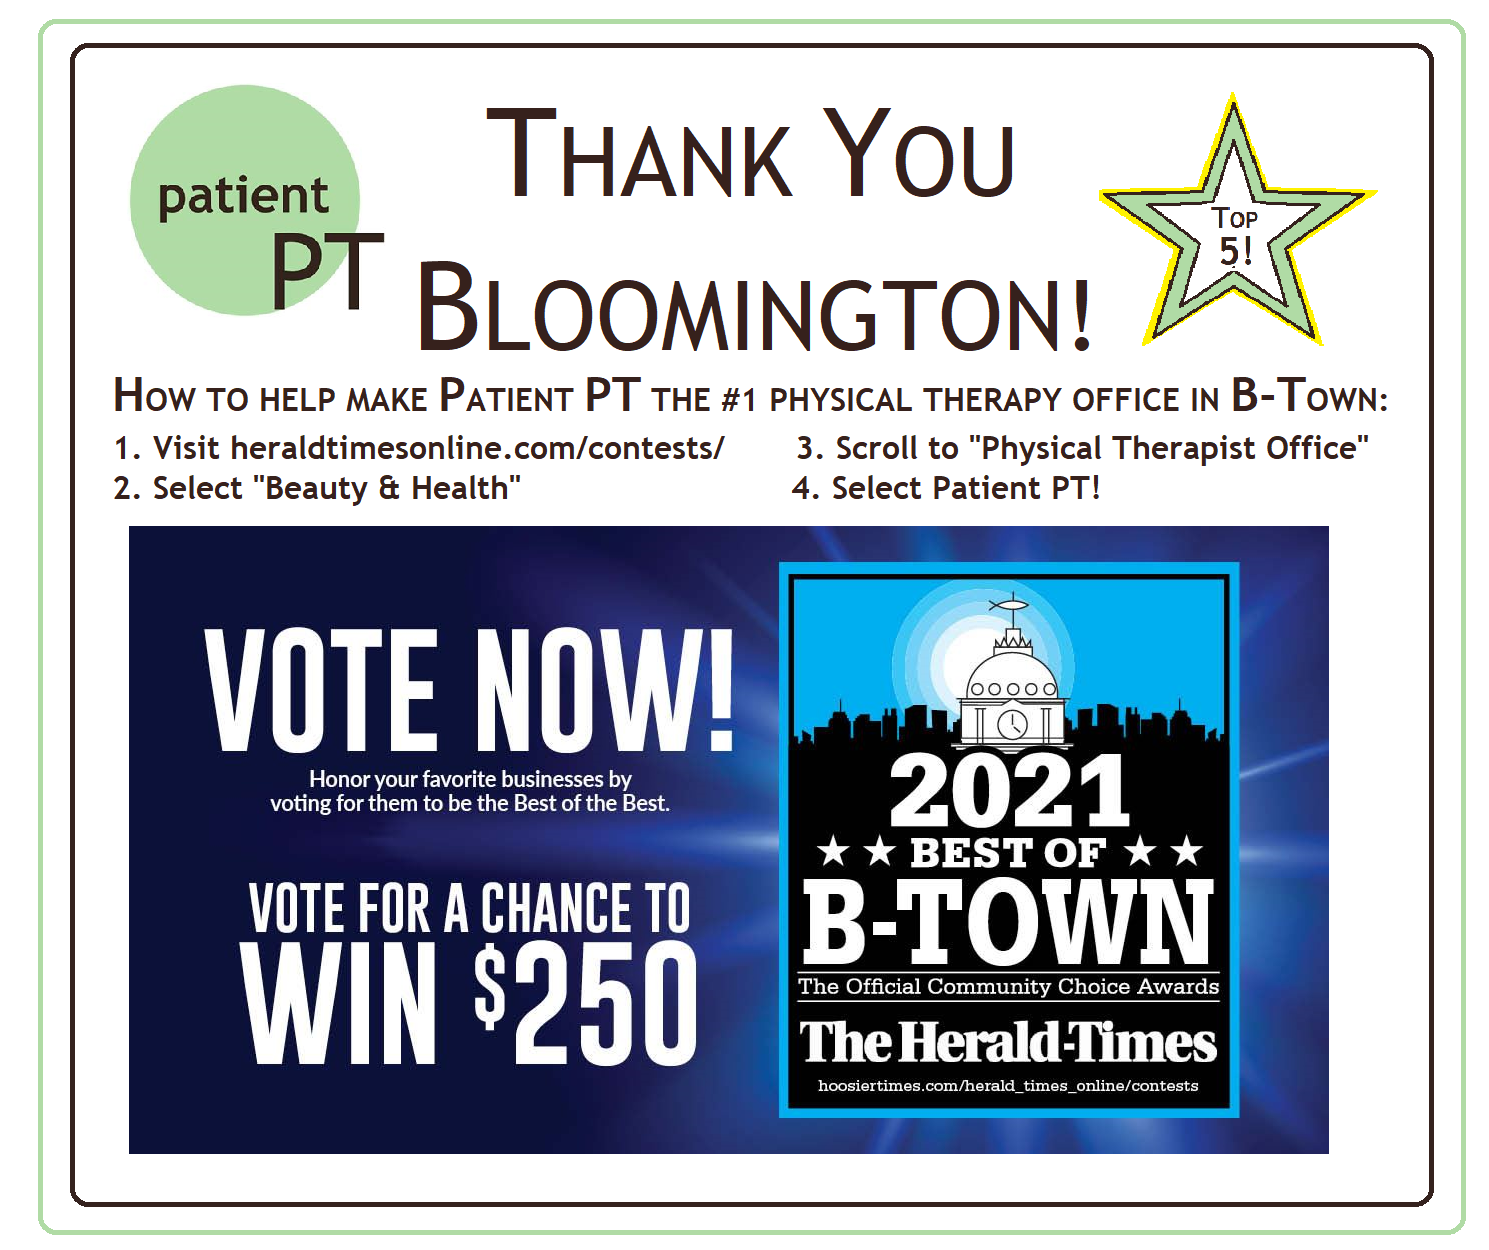 Graphic: Oh my gosh, thank you Bloomington for making my little clinic one of the Top 5 Physical Therapy Offices in Bloomington! To vote us up to number one, click here: https://embed-813989.secondstreetapp.com/.../295719305/